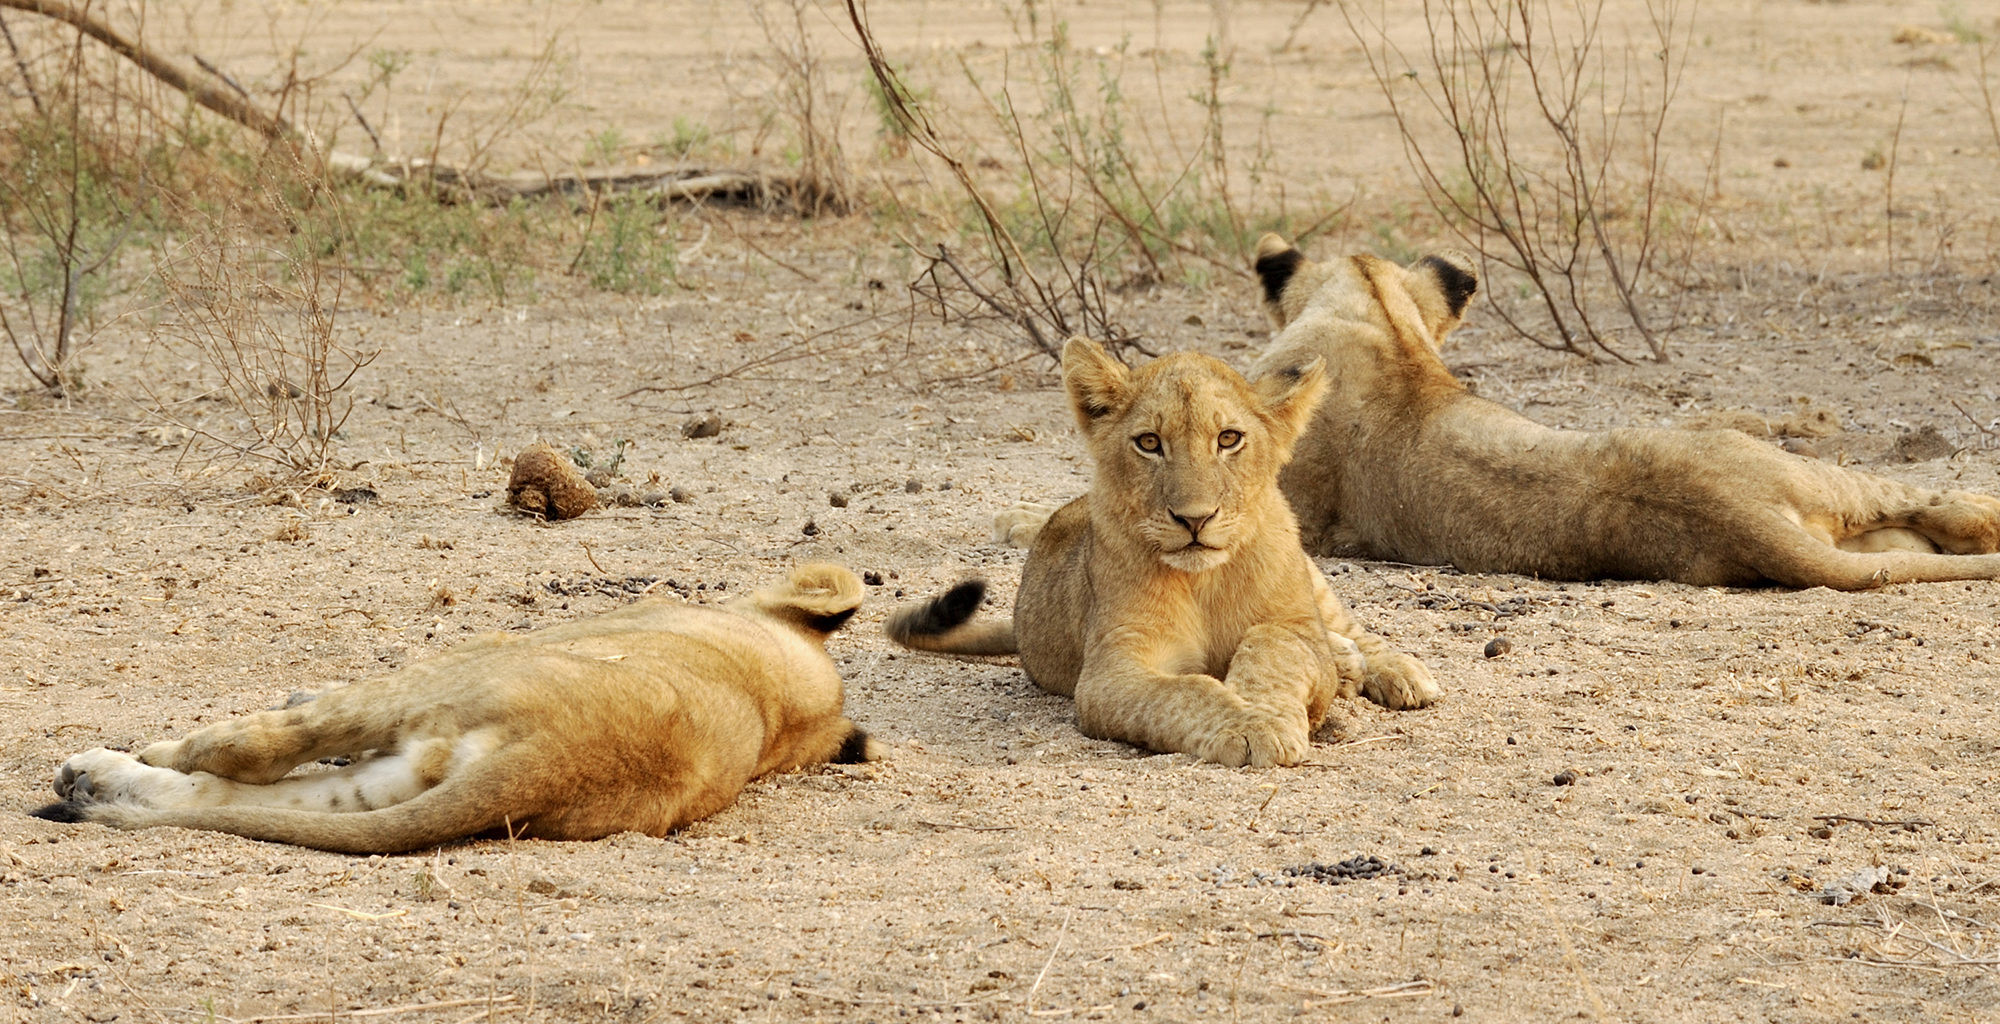 Zambia-Lower-Zambezi-Wildlife-Lion